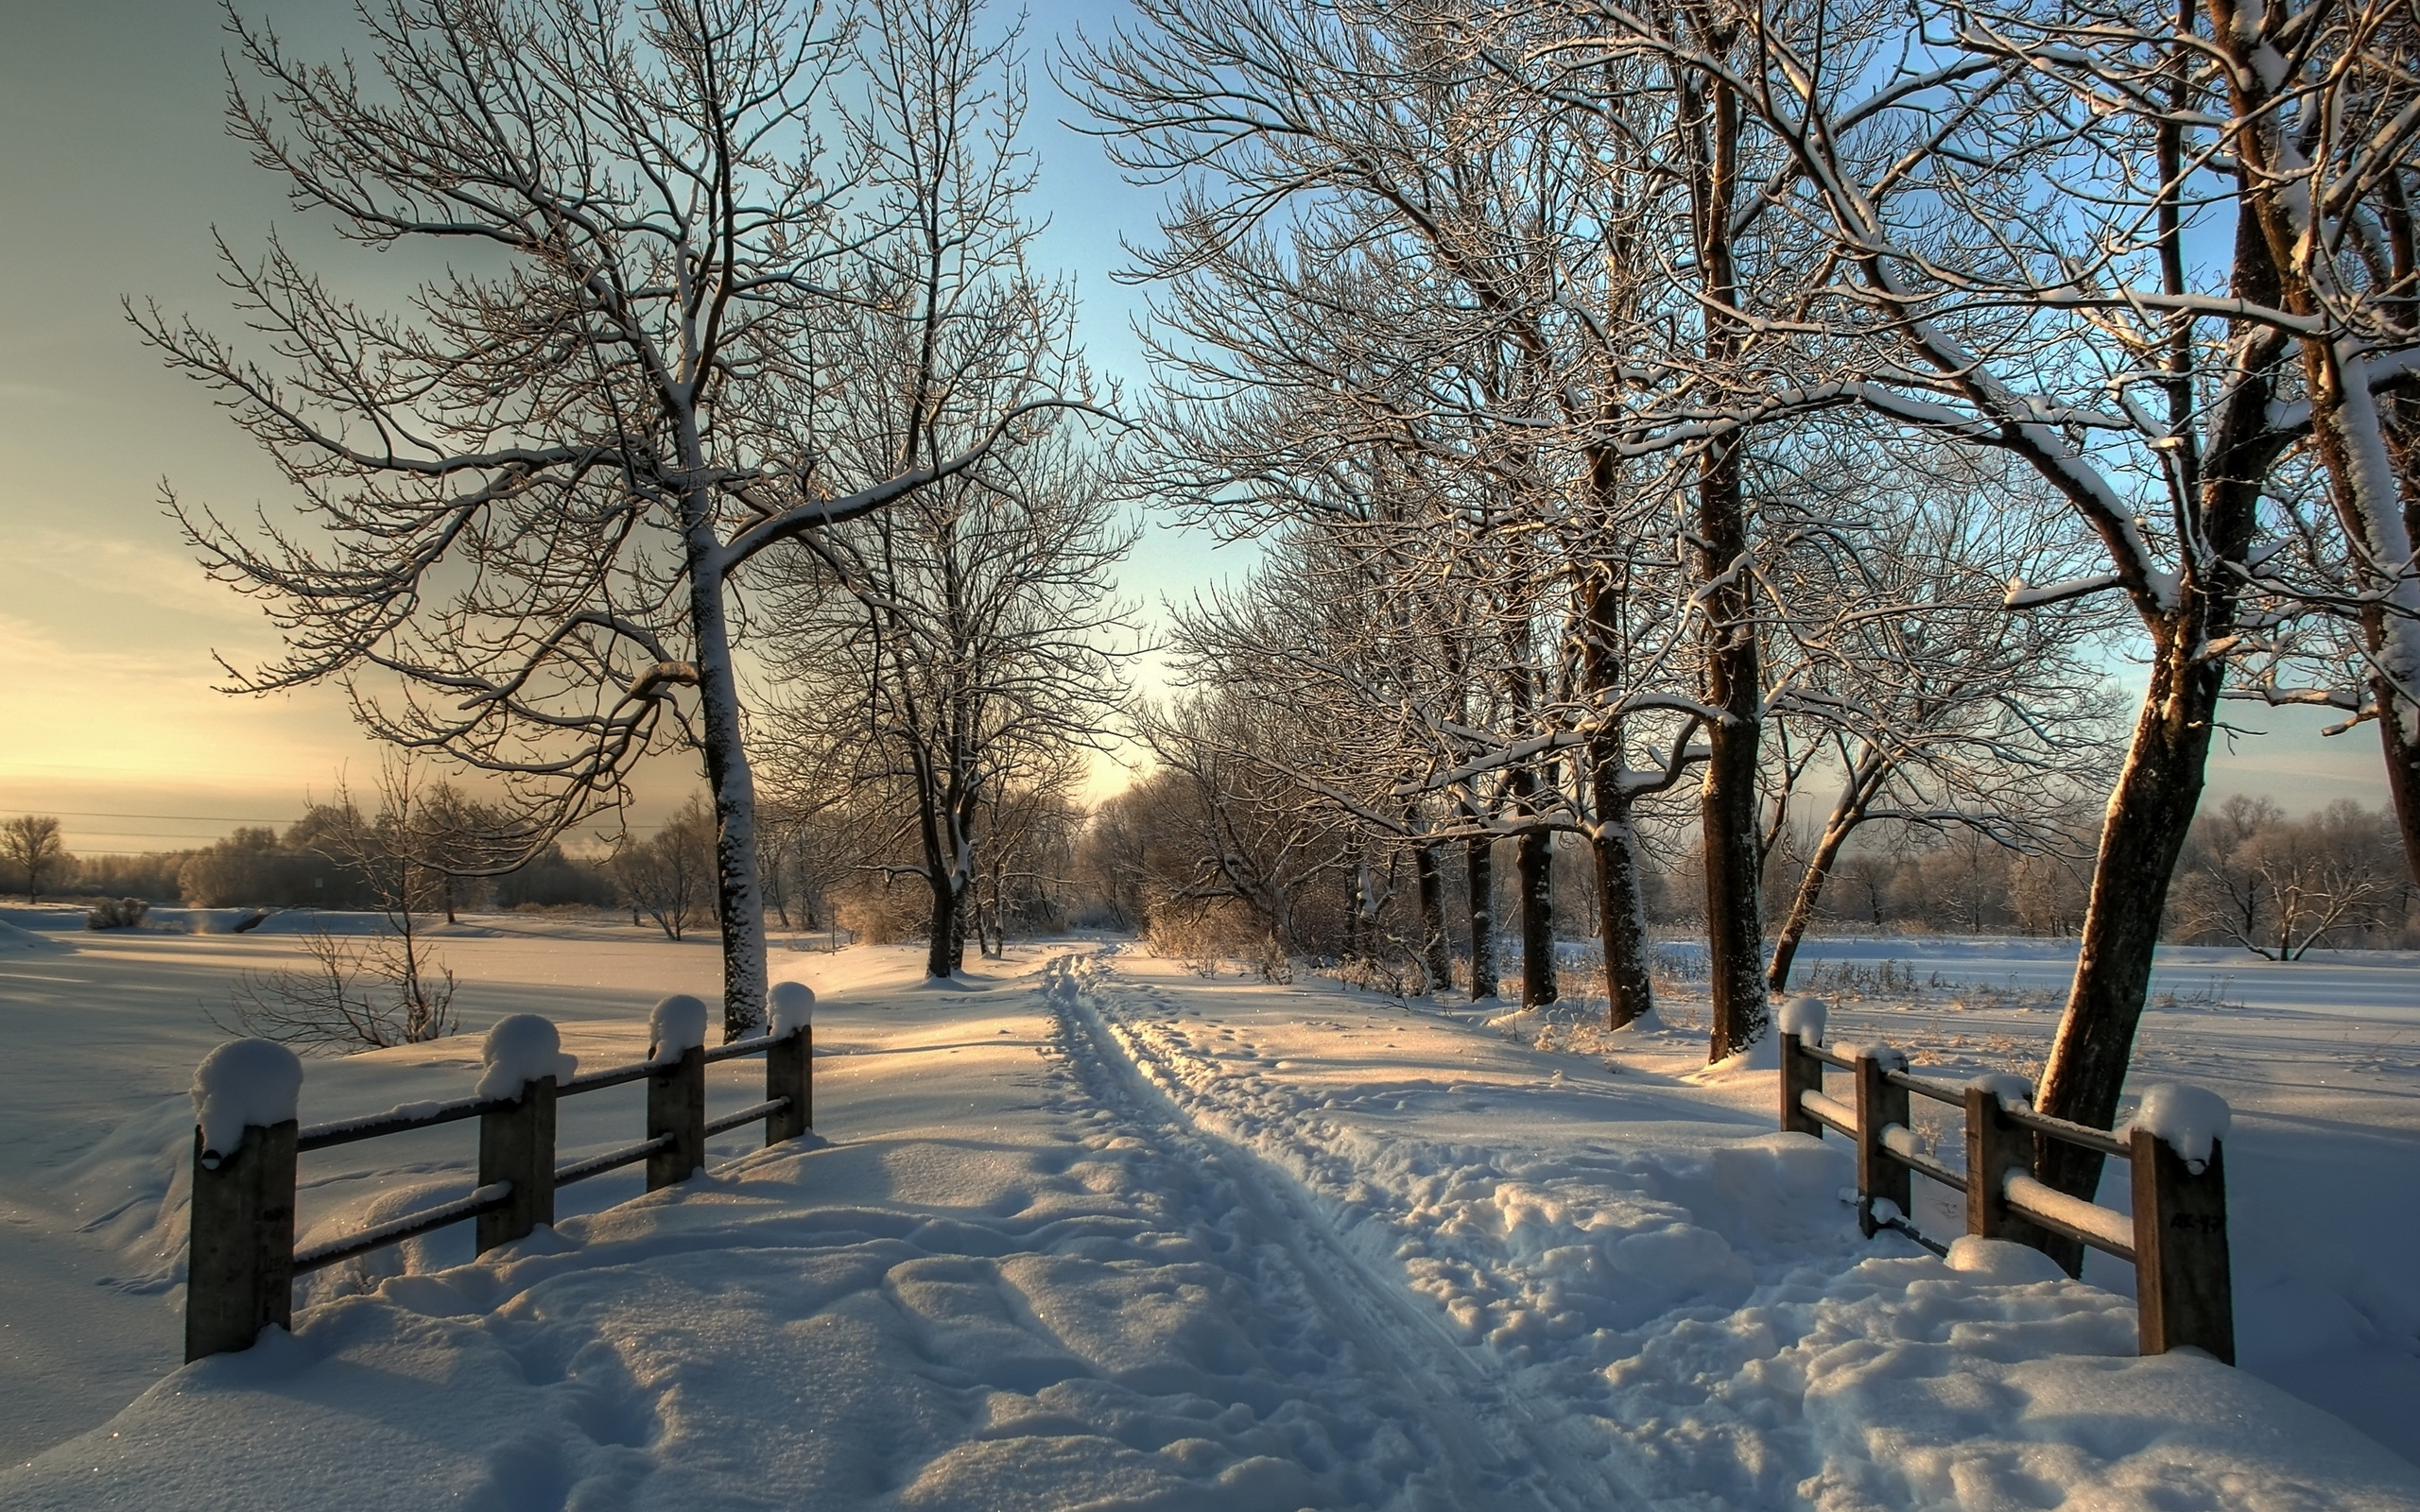 45080 download wallpaper Landscape, Winter, Snow screensavers and pictures for free